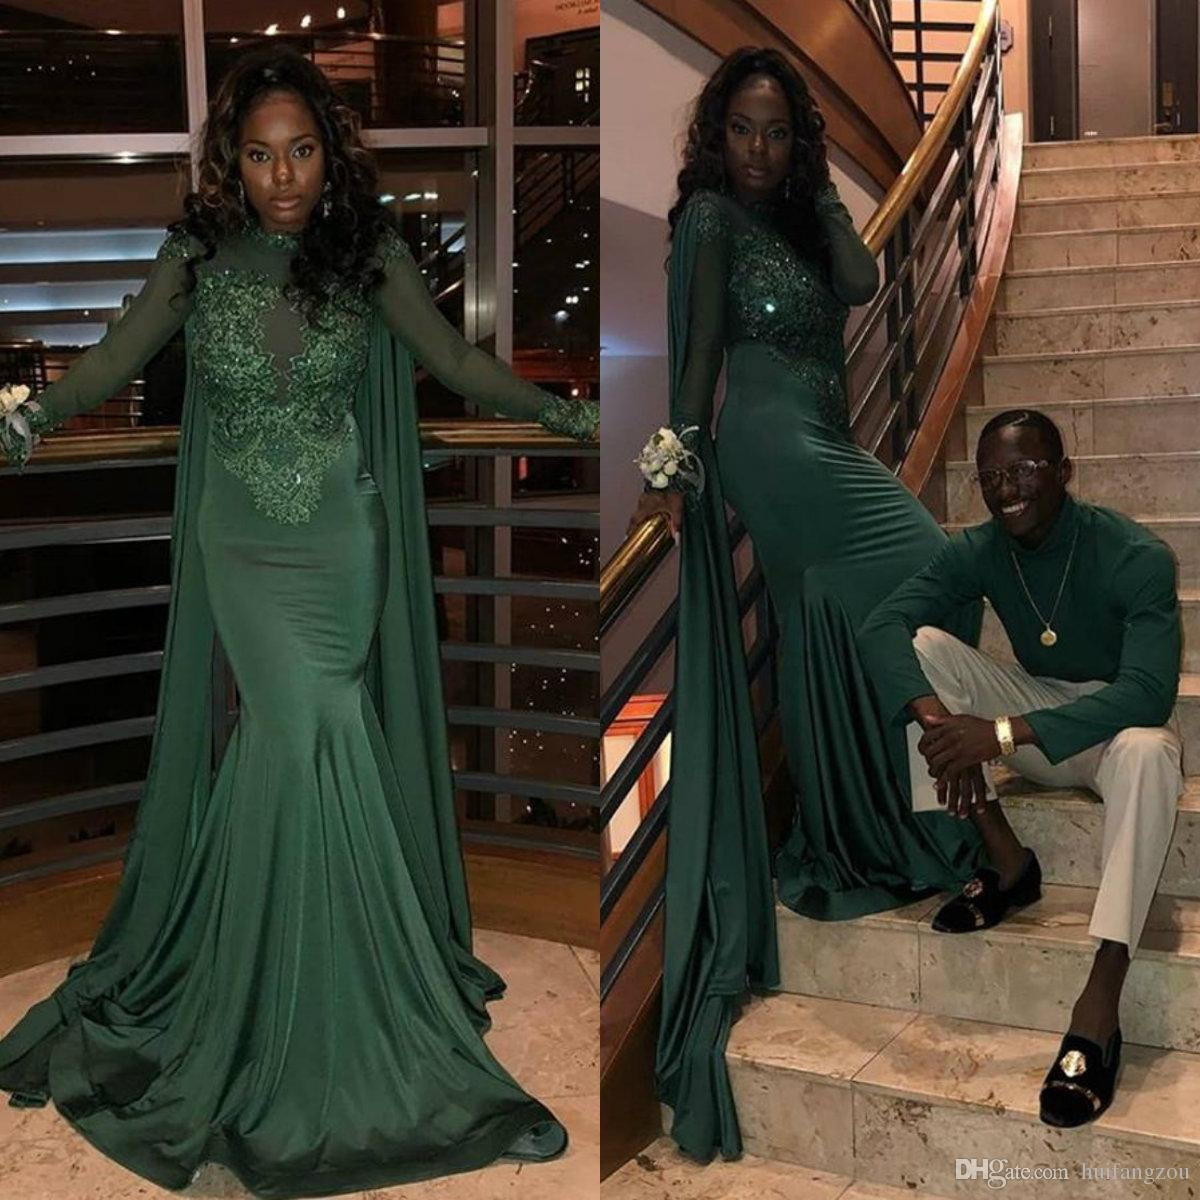 Emerald Green Mermaid Prom Dresses Arabic Dubai Long Sleeve Lace Appliques  Illusion Sequined Evening Dress Black Girls Formal Party Dresses Online Prom  ... 7d1ba985c06a